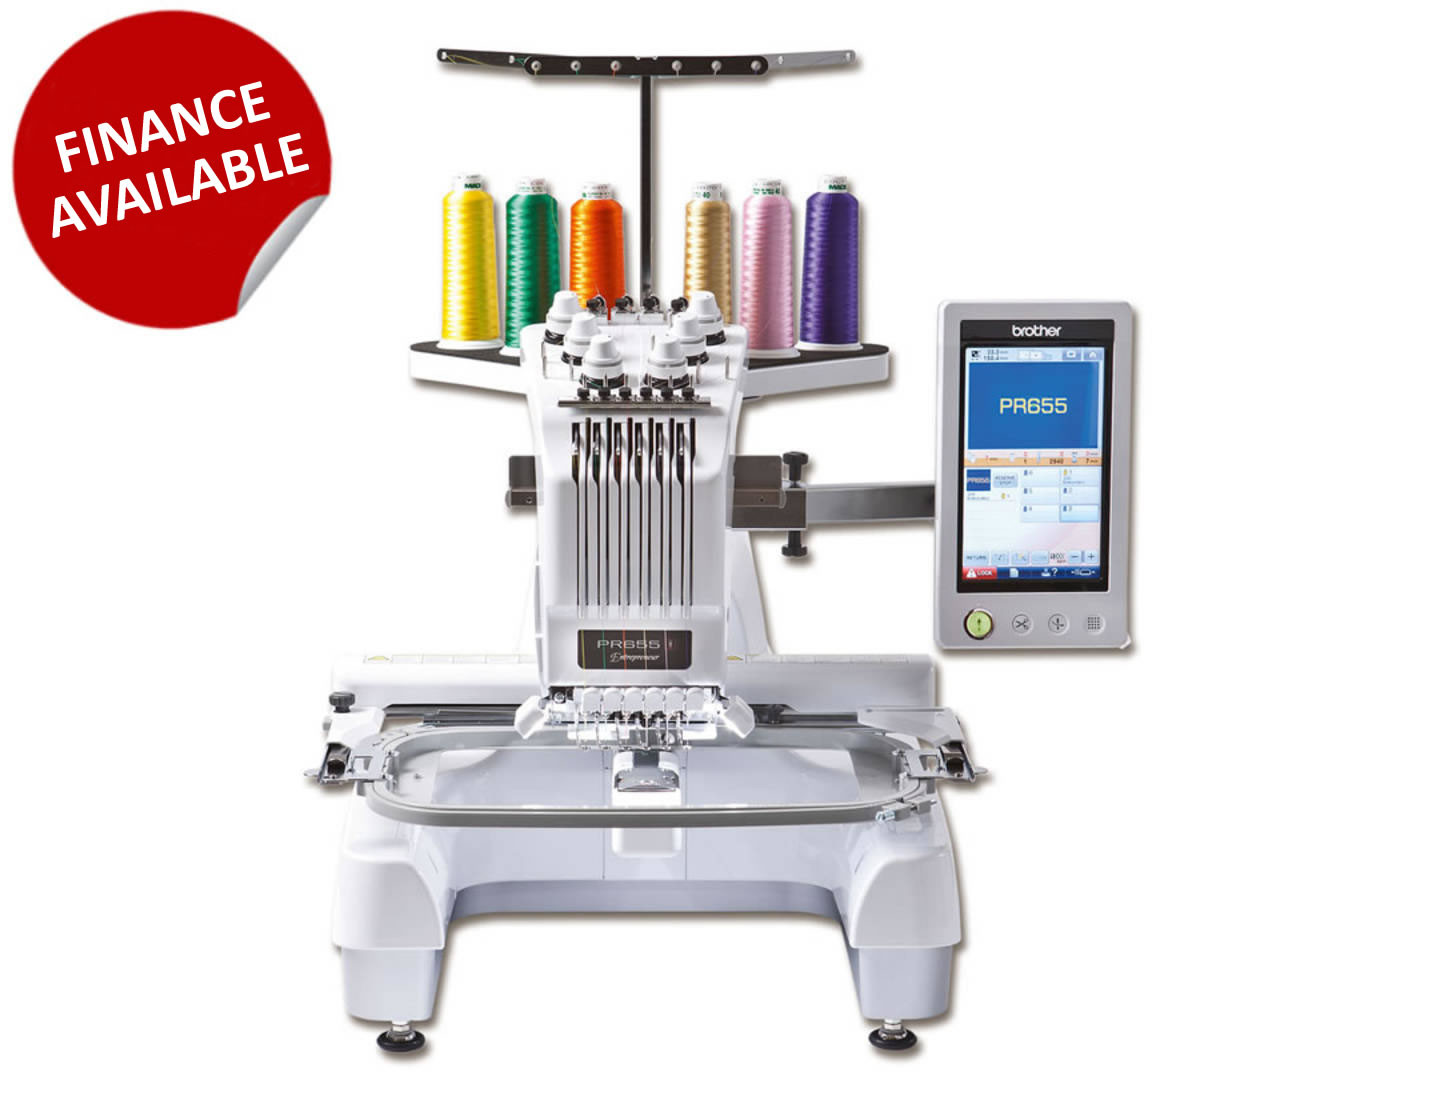 Embroidery Machine Inspirational Brother Embroidery Machines Of Innovative 43 Pictures Embroidery Machine